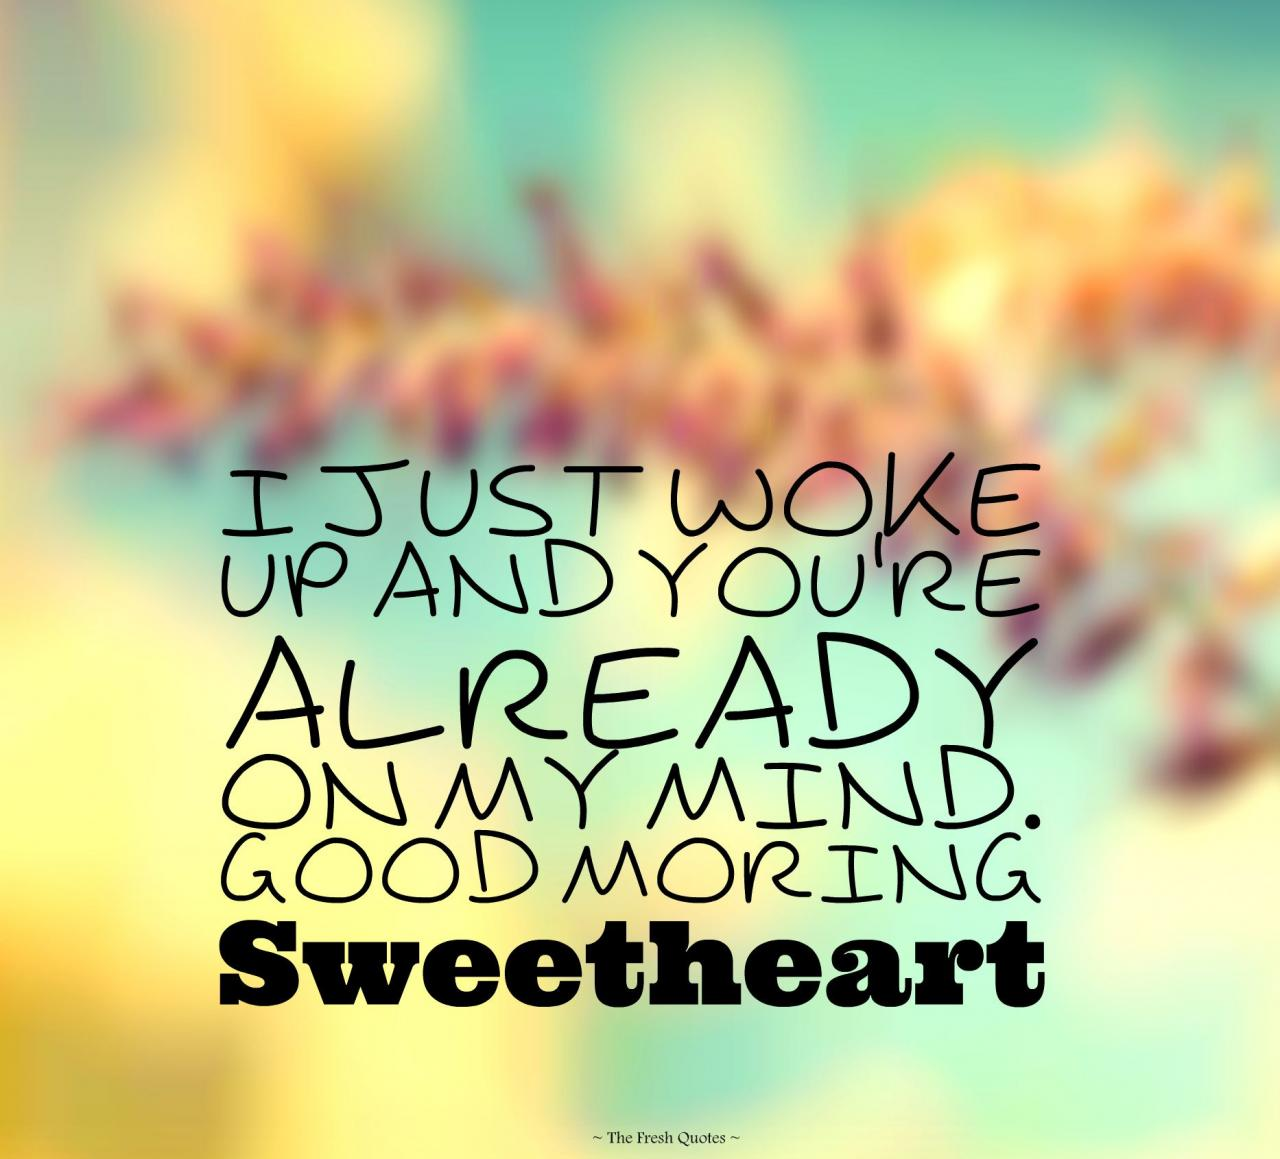 I Just Woke Up And Youre Already On My Mind Good Moring Sweetheart Quotes Sayings